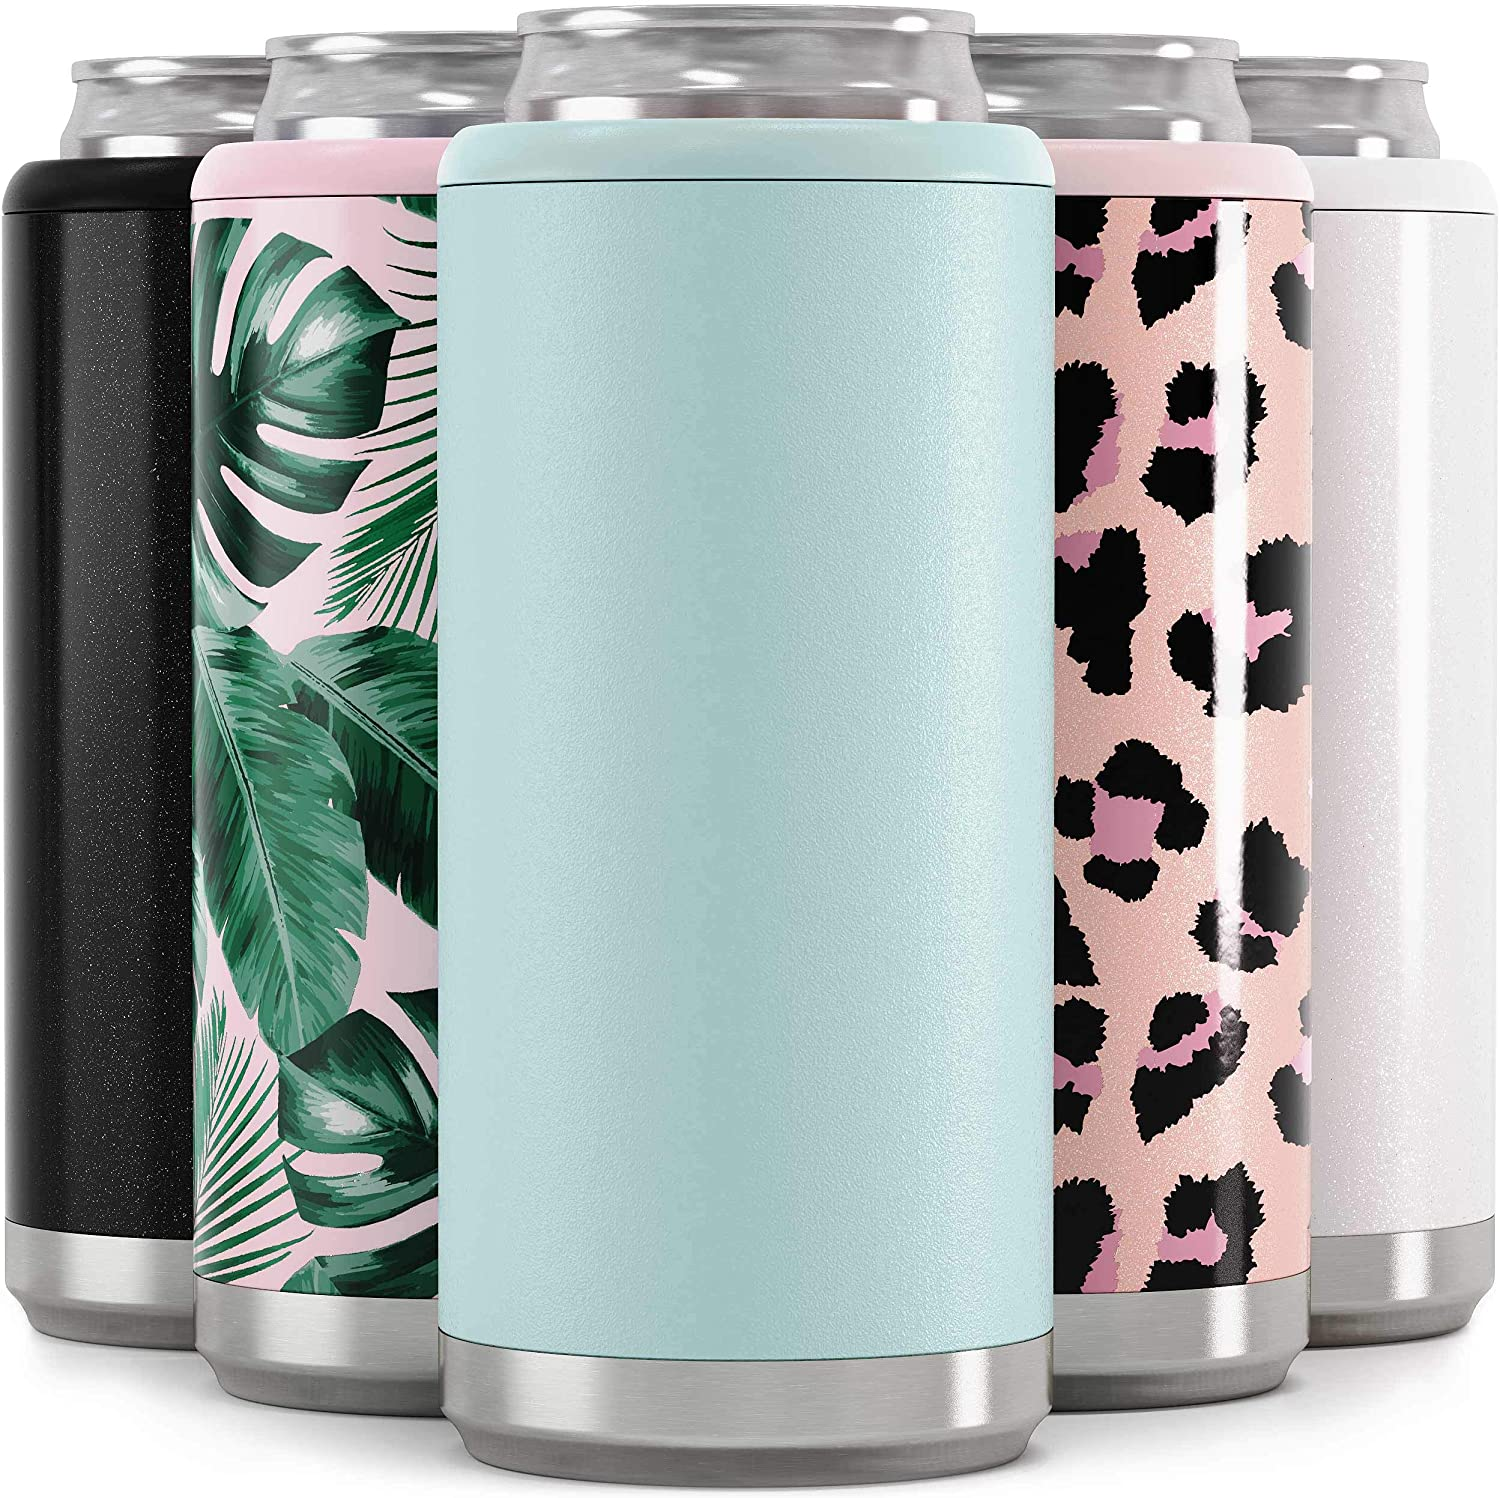 Maars Skinny Can Cooler for Slim Beer & Hard Seltzer | Stainless Steel 12oz Koozy Sleeve, Double Wall Vacuum Insulated Drink Holder - Matte Seaglass